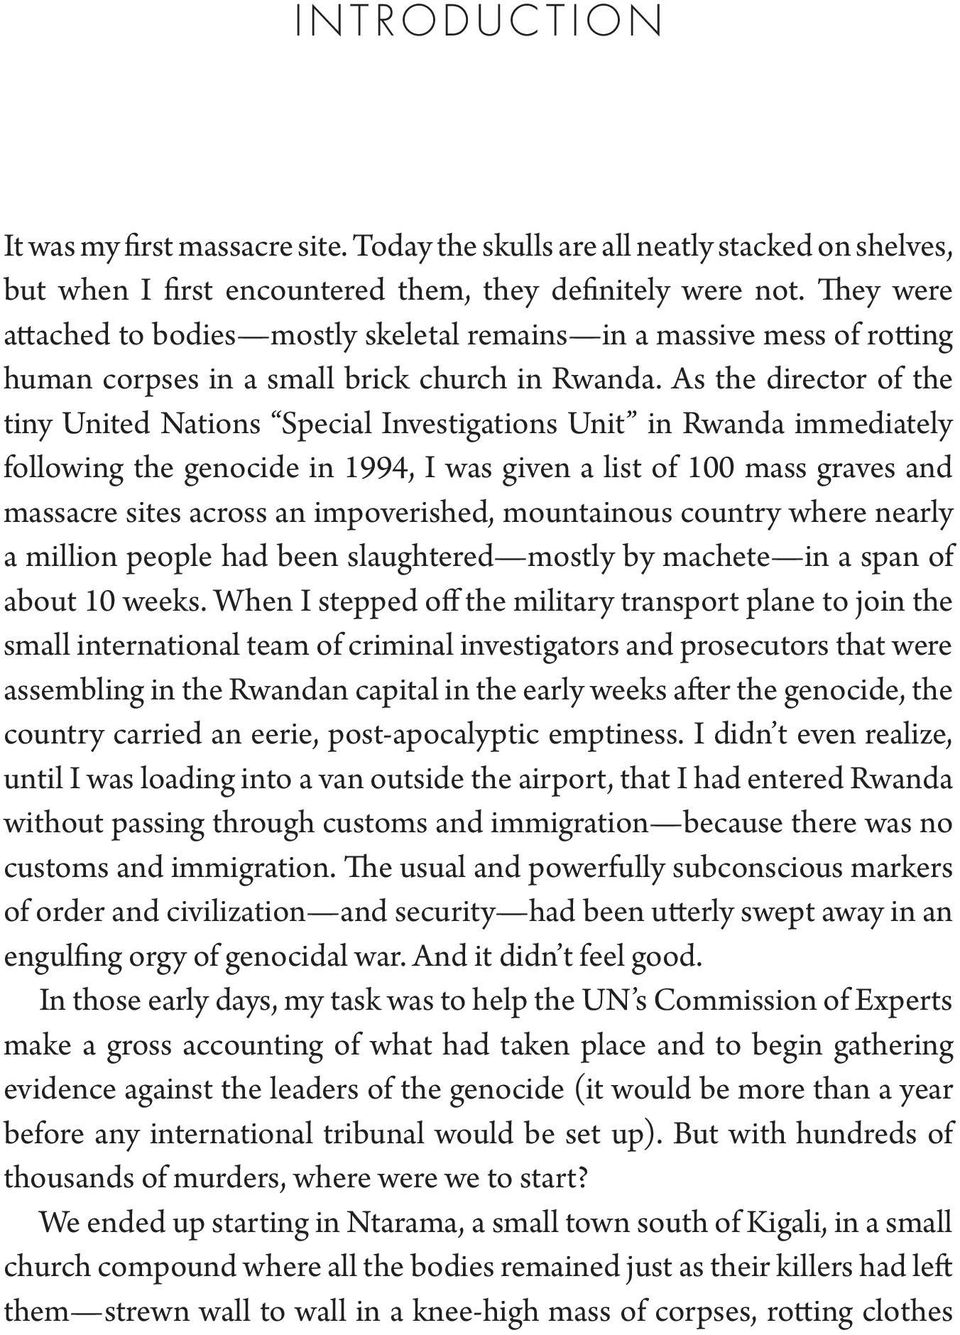 As the director of the tiny United Nations Special Investigations Unit in Rwanda immediately following the genocide in 1994, I was given a list of 100 mass graves and massacre sites across an